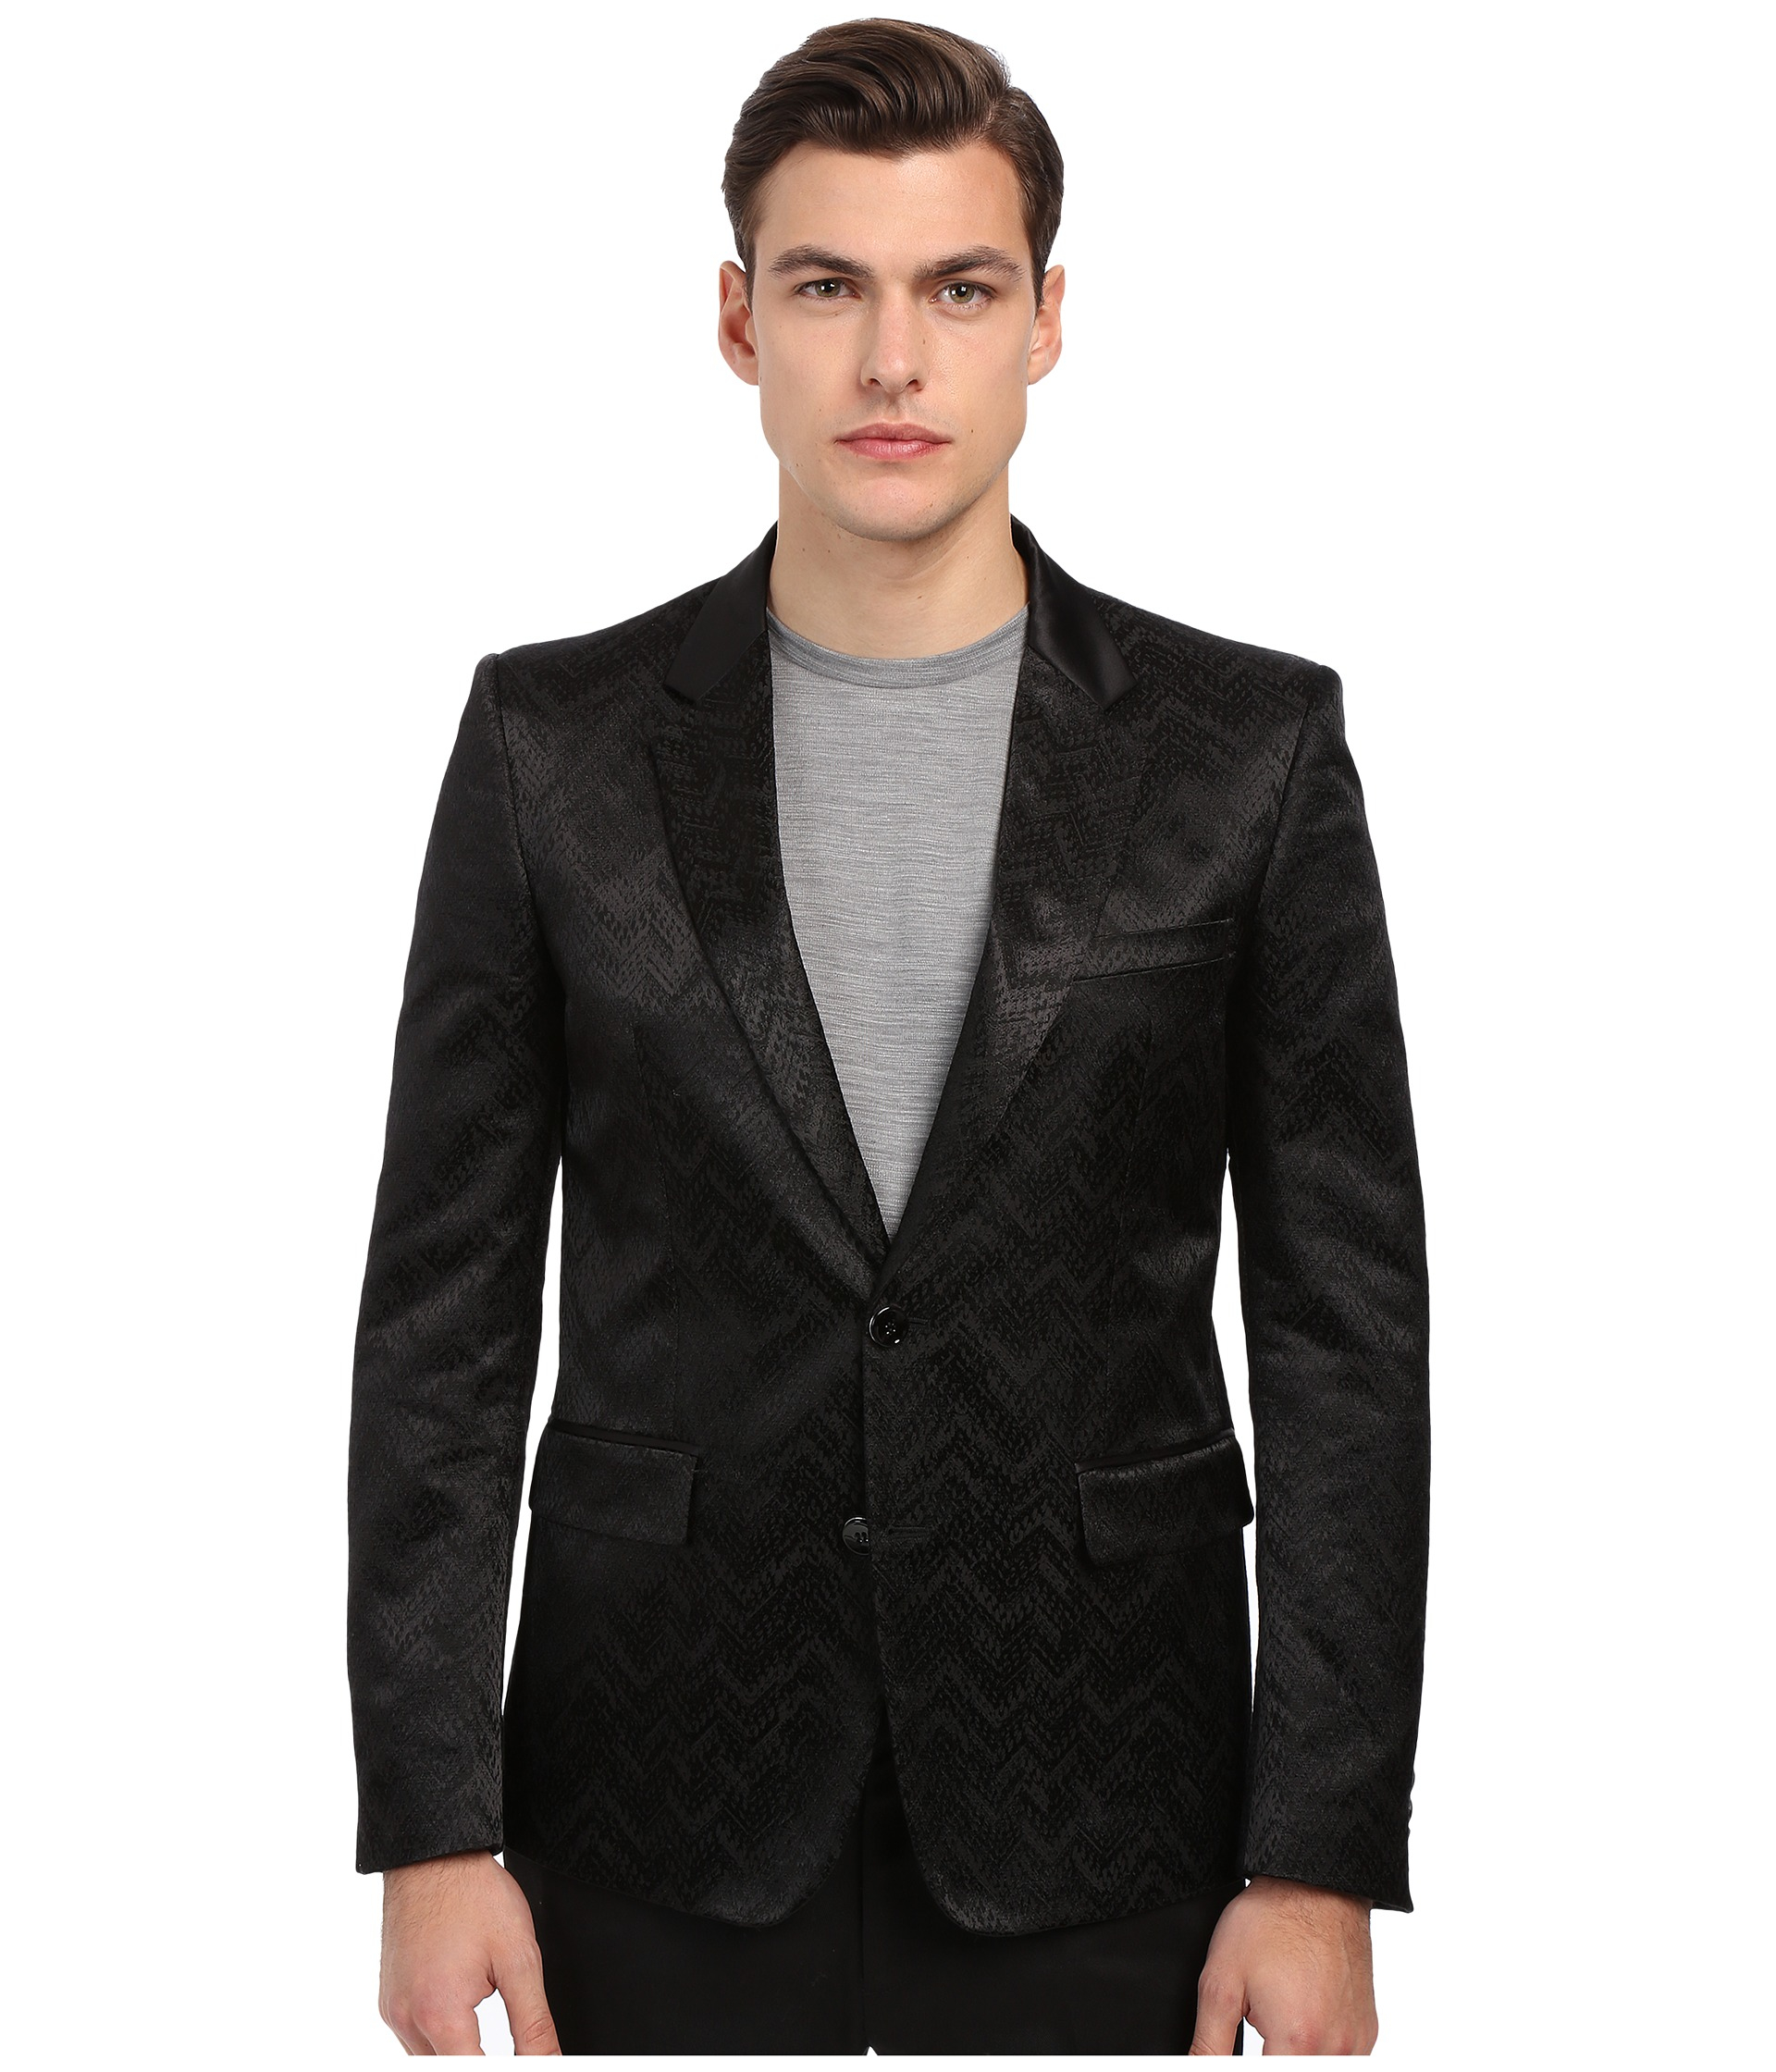 reputable site efe9a 06dc9 Lyst - Just Cavalli Chevron Chain Jacquard Dinner Jacket in Black ...